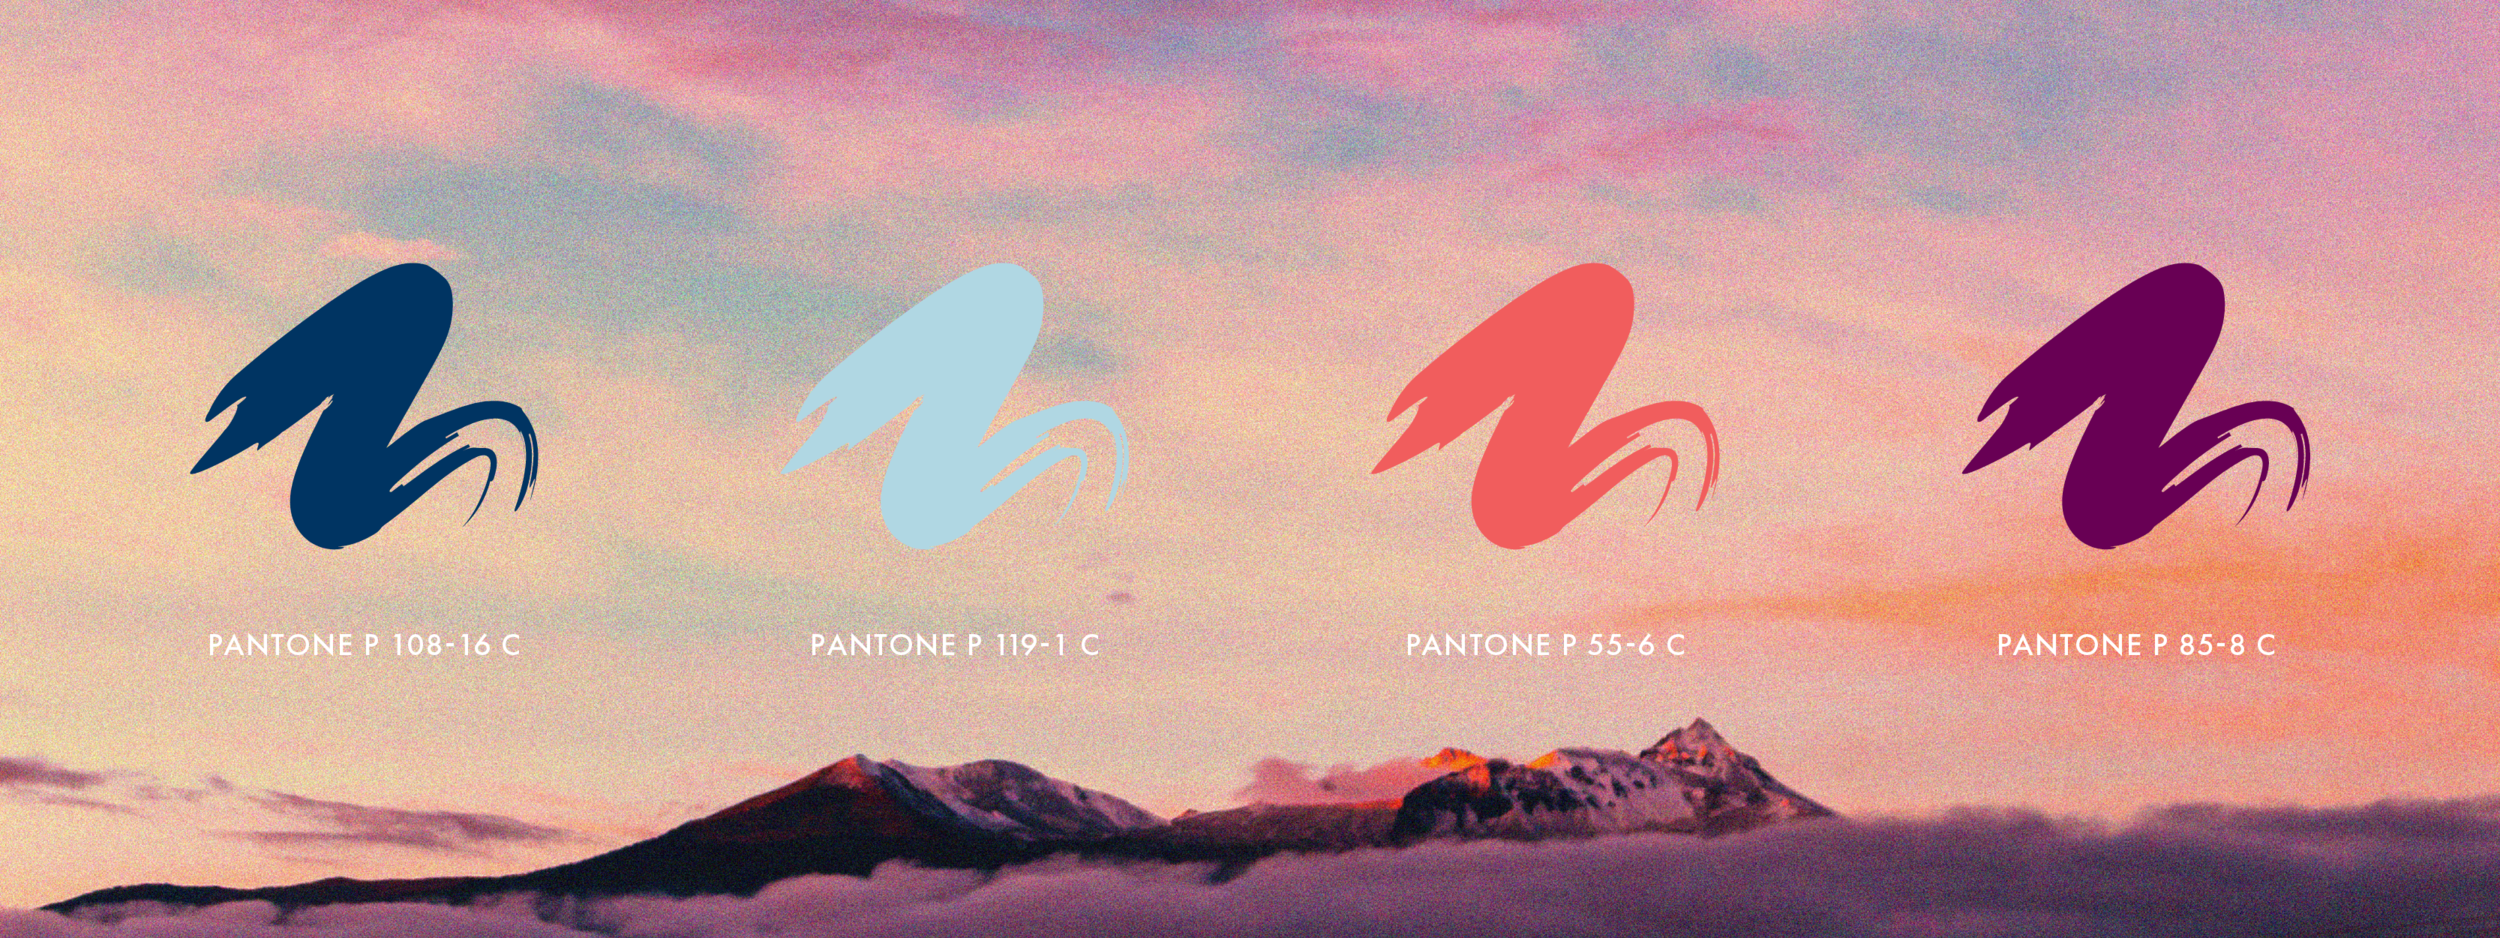 Branding-Imagery-Colors.png